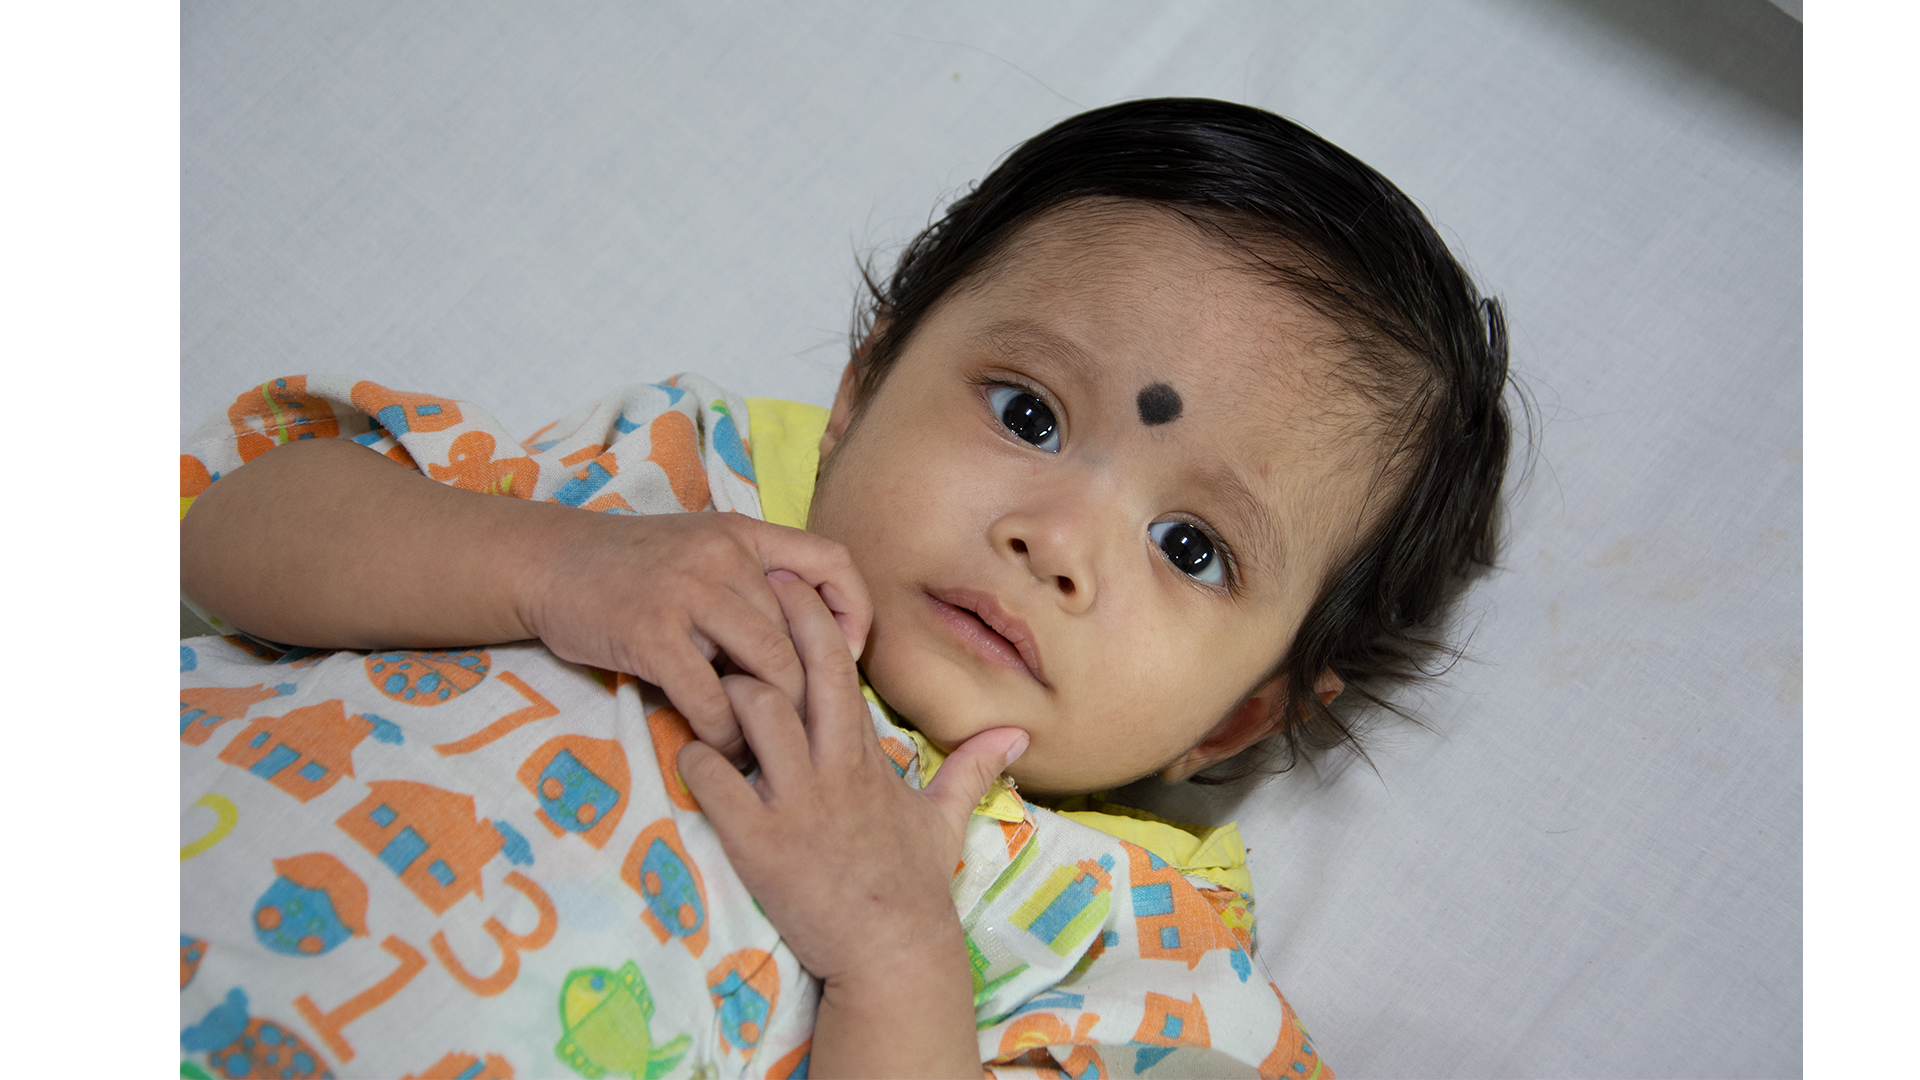 Baby Reyan's heart-warming journey- A Crowdfunding Story